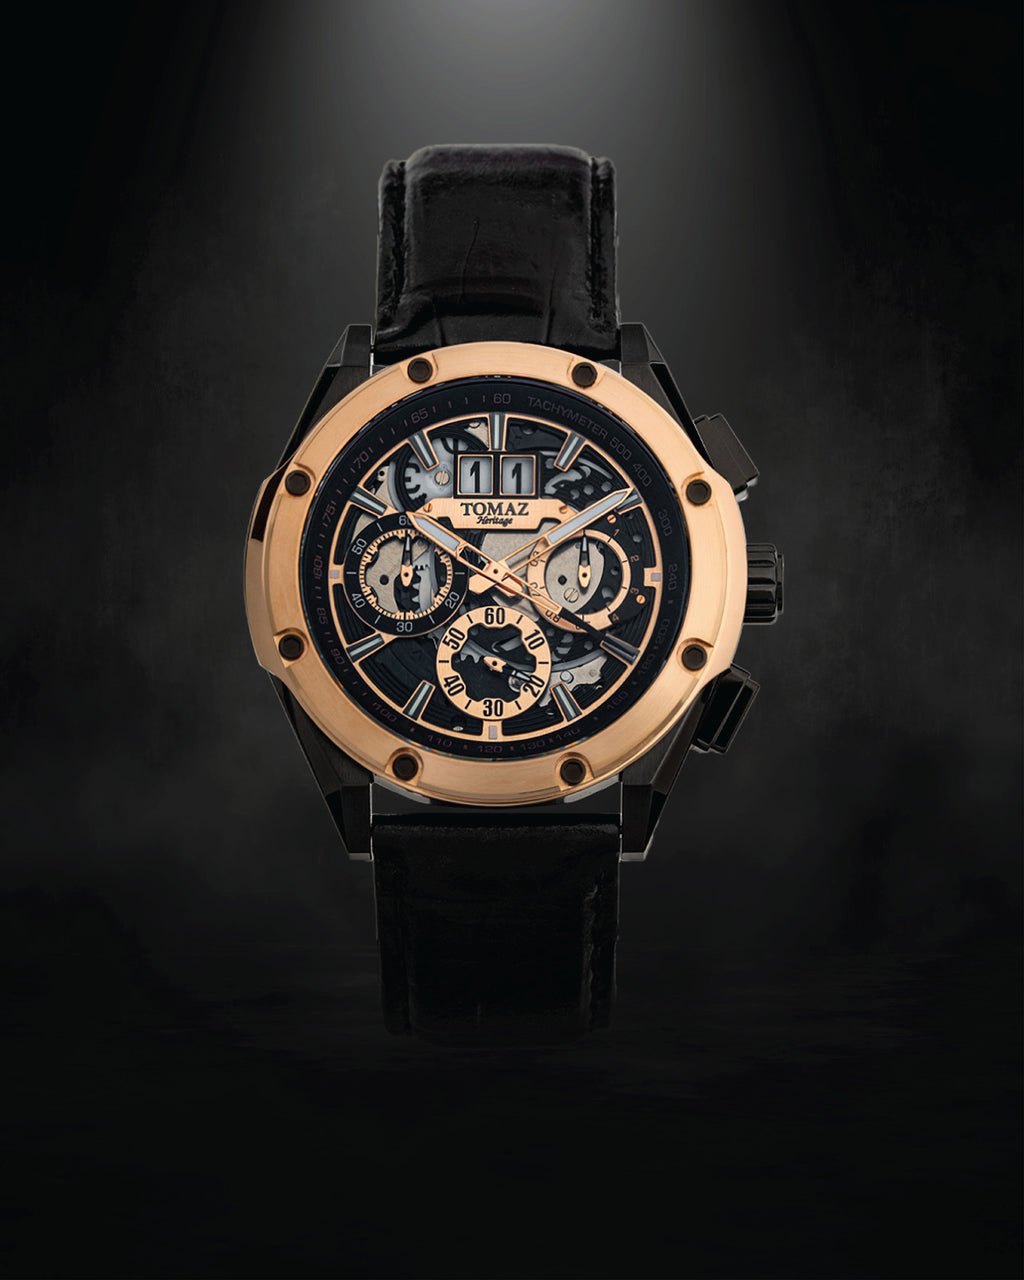 Tomaz Men's Watch RAWR III (Black/Rosegold) -TW024B-D3